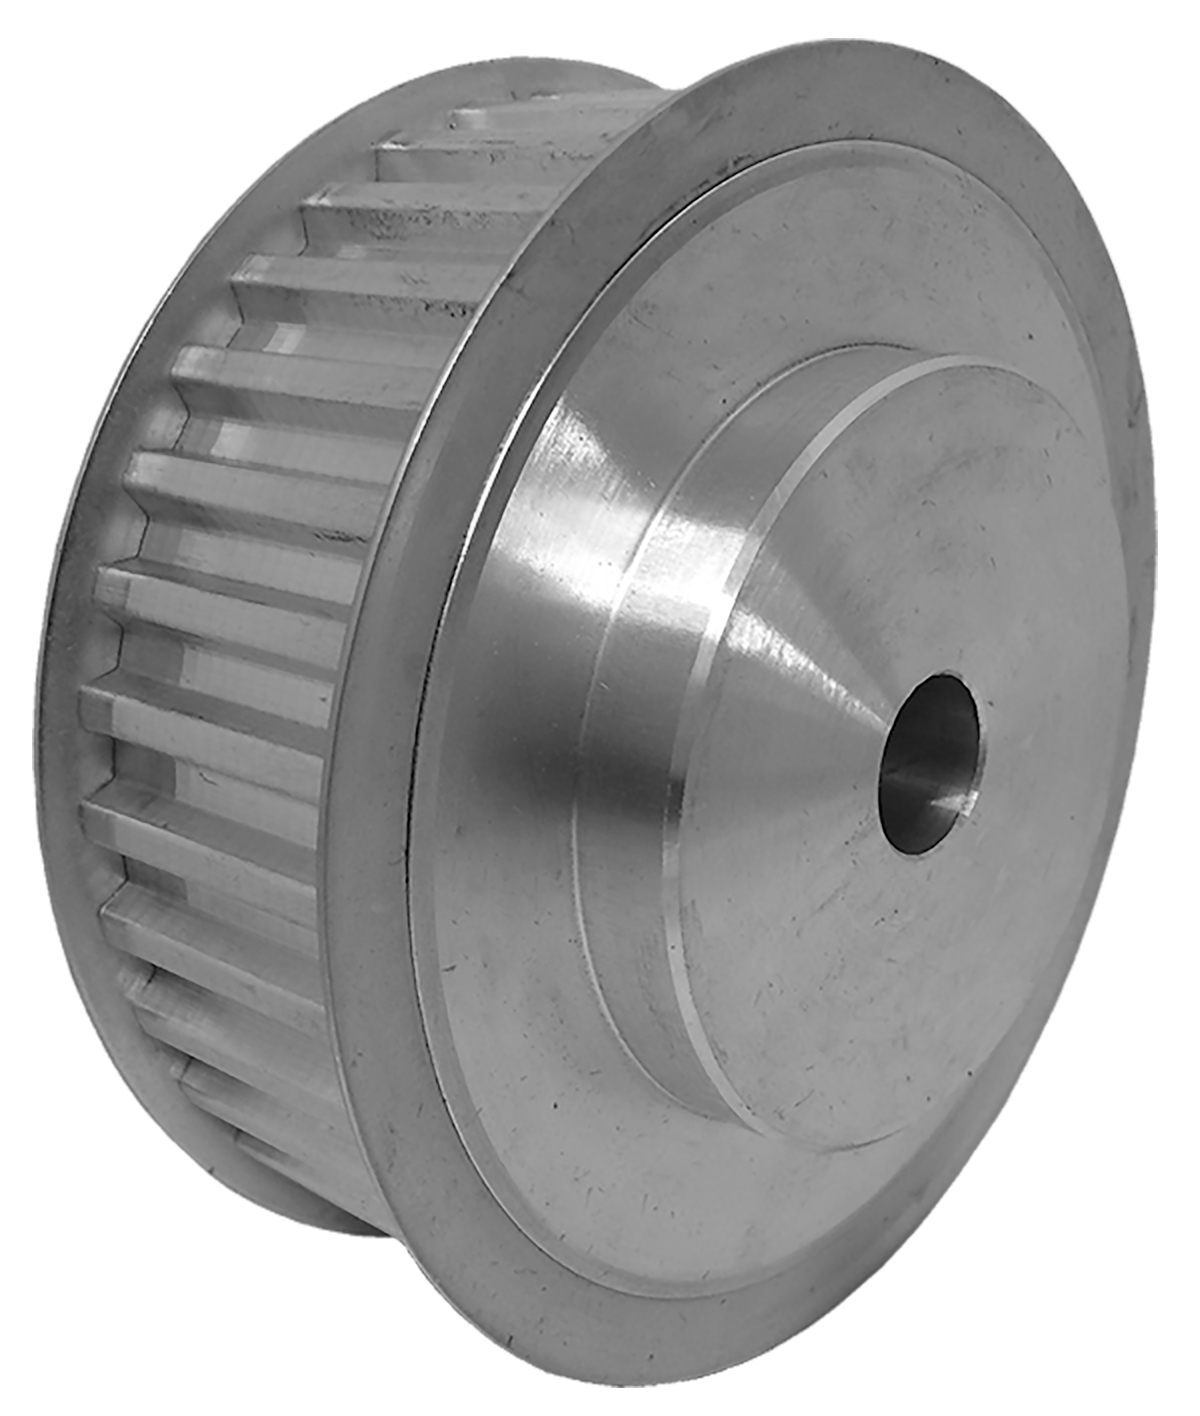 47T10/36-2 - Aluminum Metric Pulleys